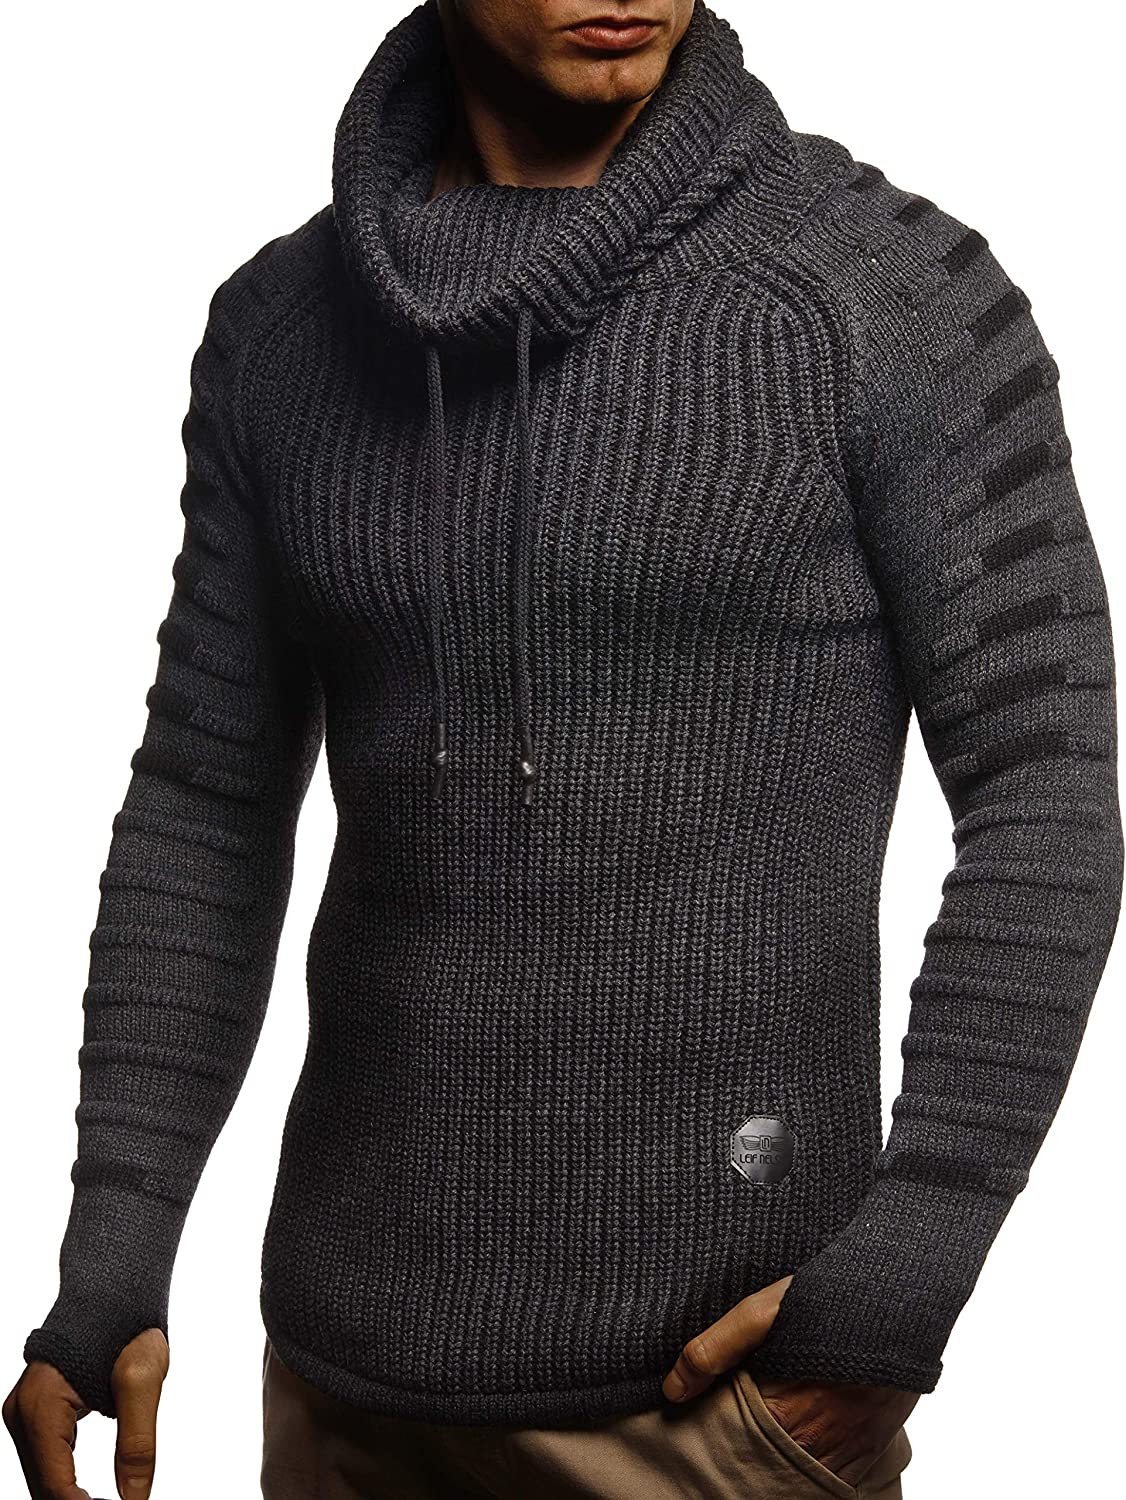 Leif Nelson Mens Pullover Knit Sweater Chunky Knit Stand-up Collar LN-5640 Black Large